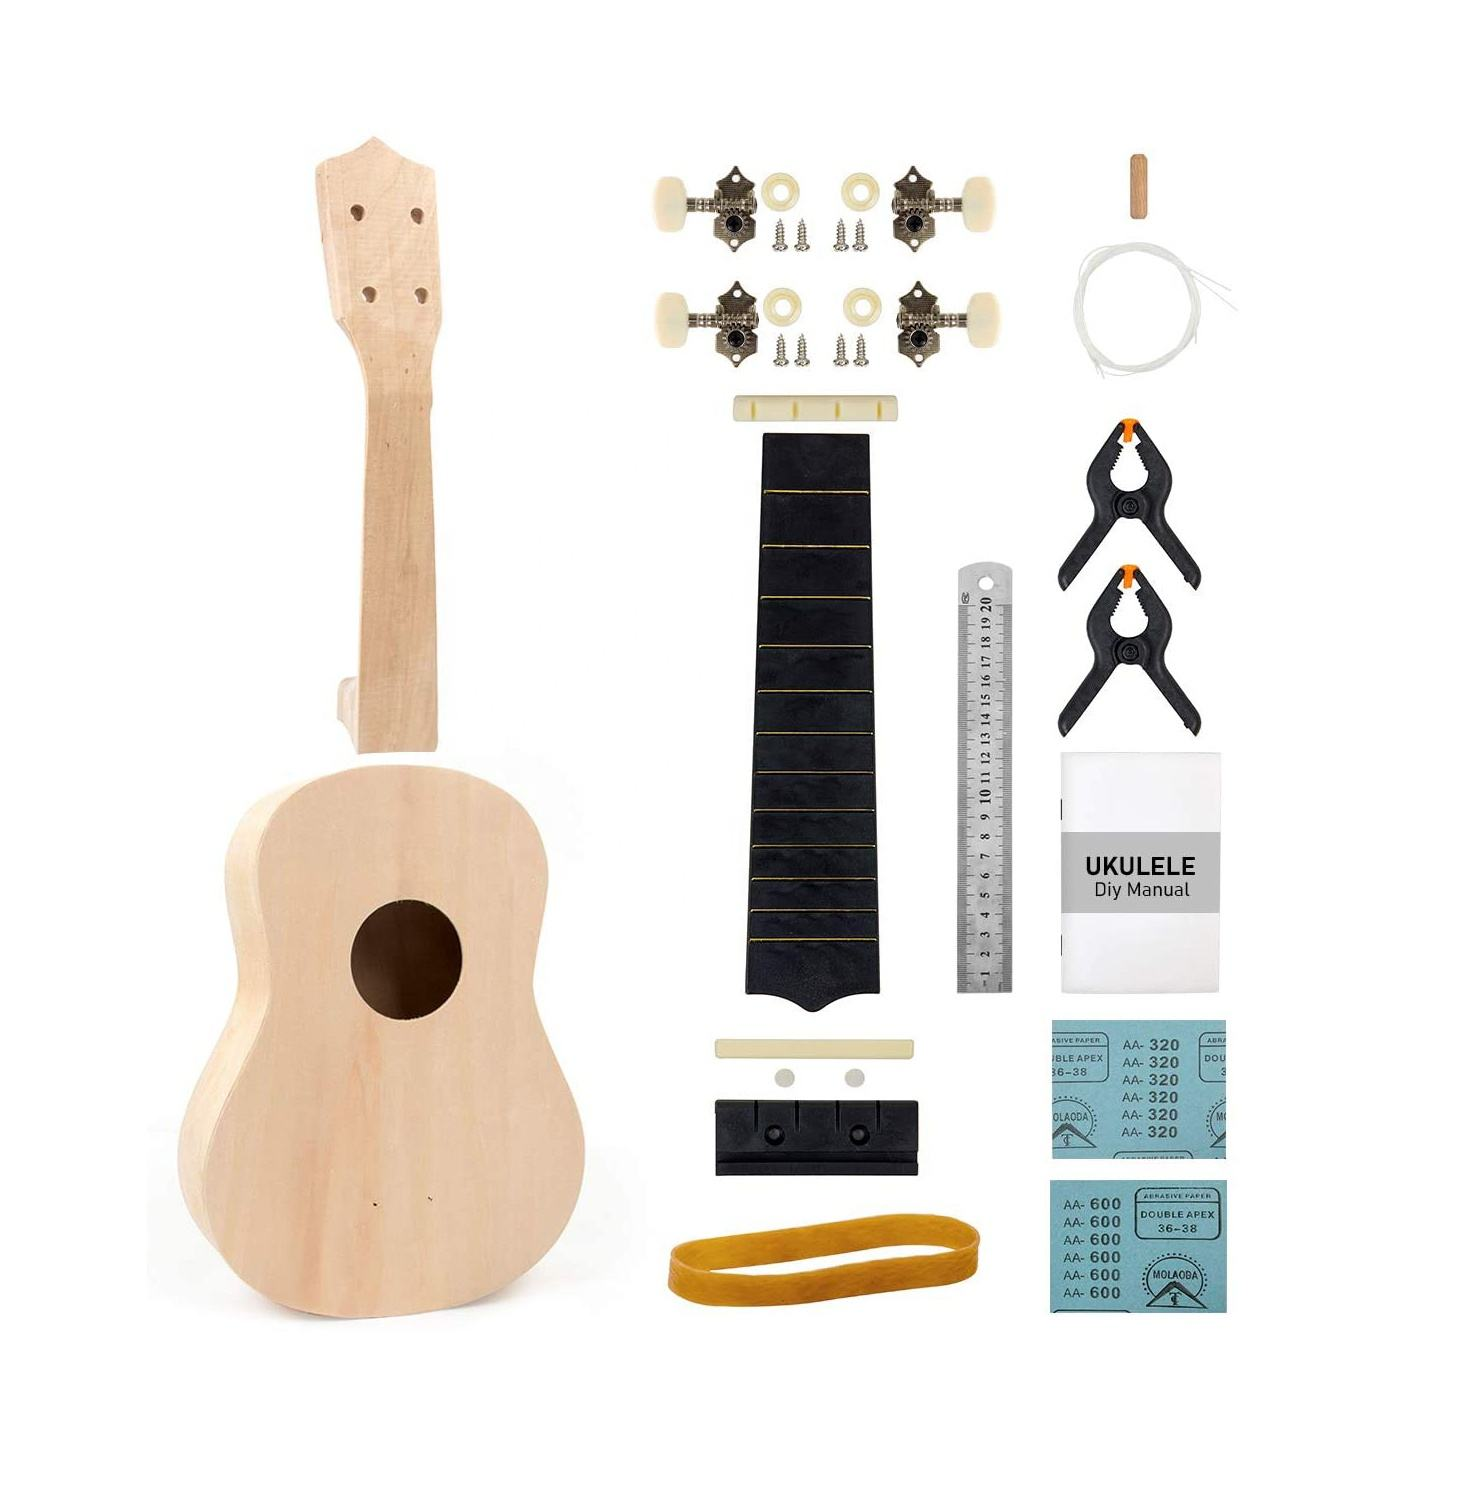 Kit Solid Wood Ebony Travel Colored String Case Personalizado Uk 21 Red Concert Electric Ukulele Bags